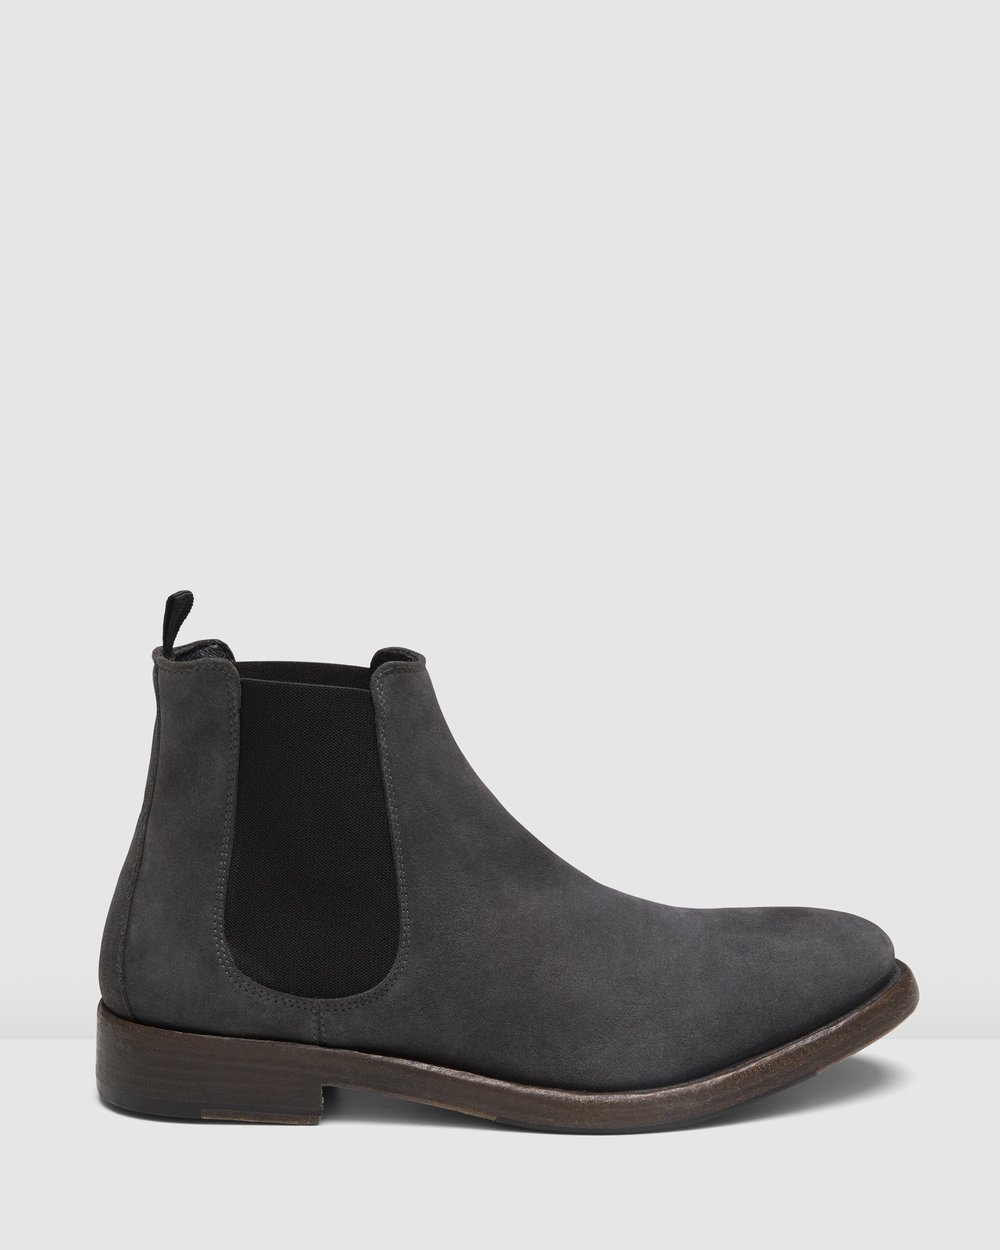 Flores Chelsea Boots By Aquila Online The Iconic Australia